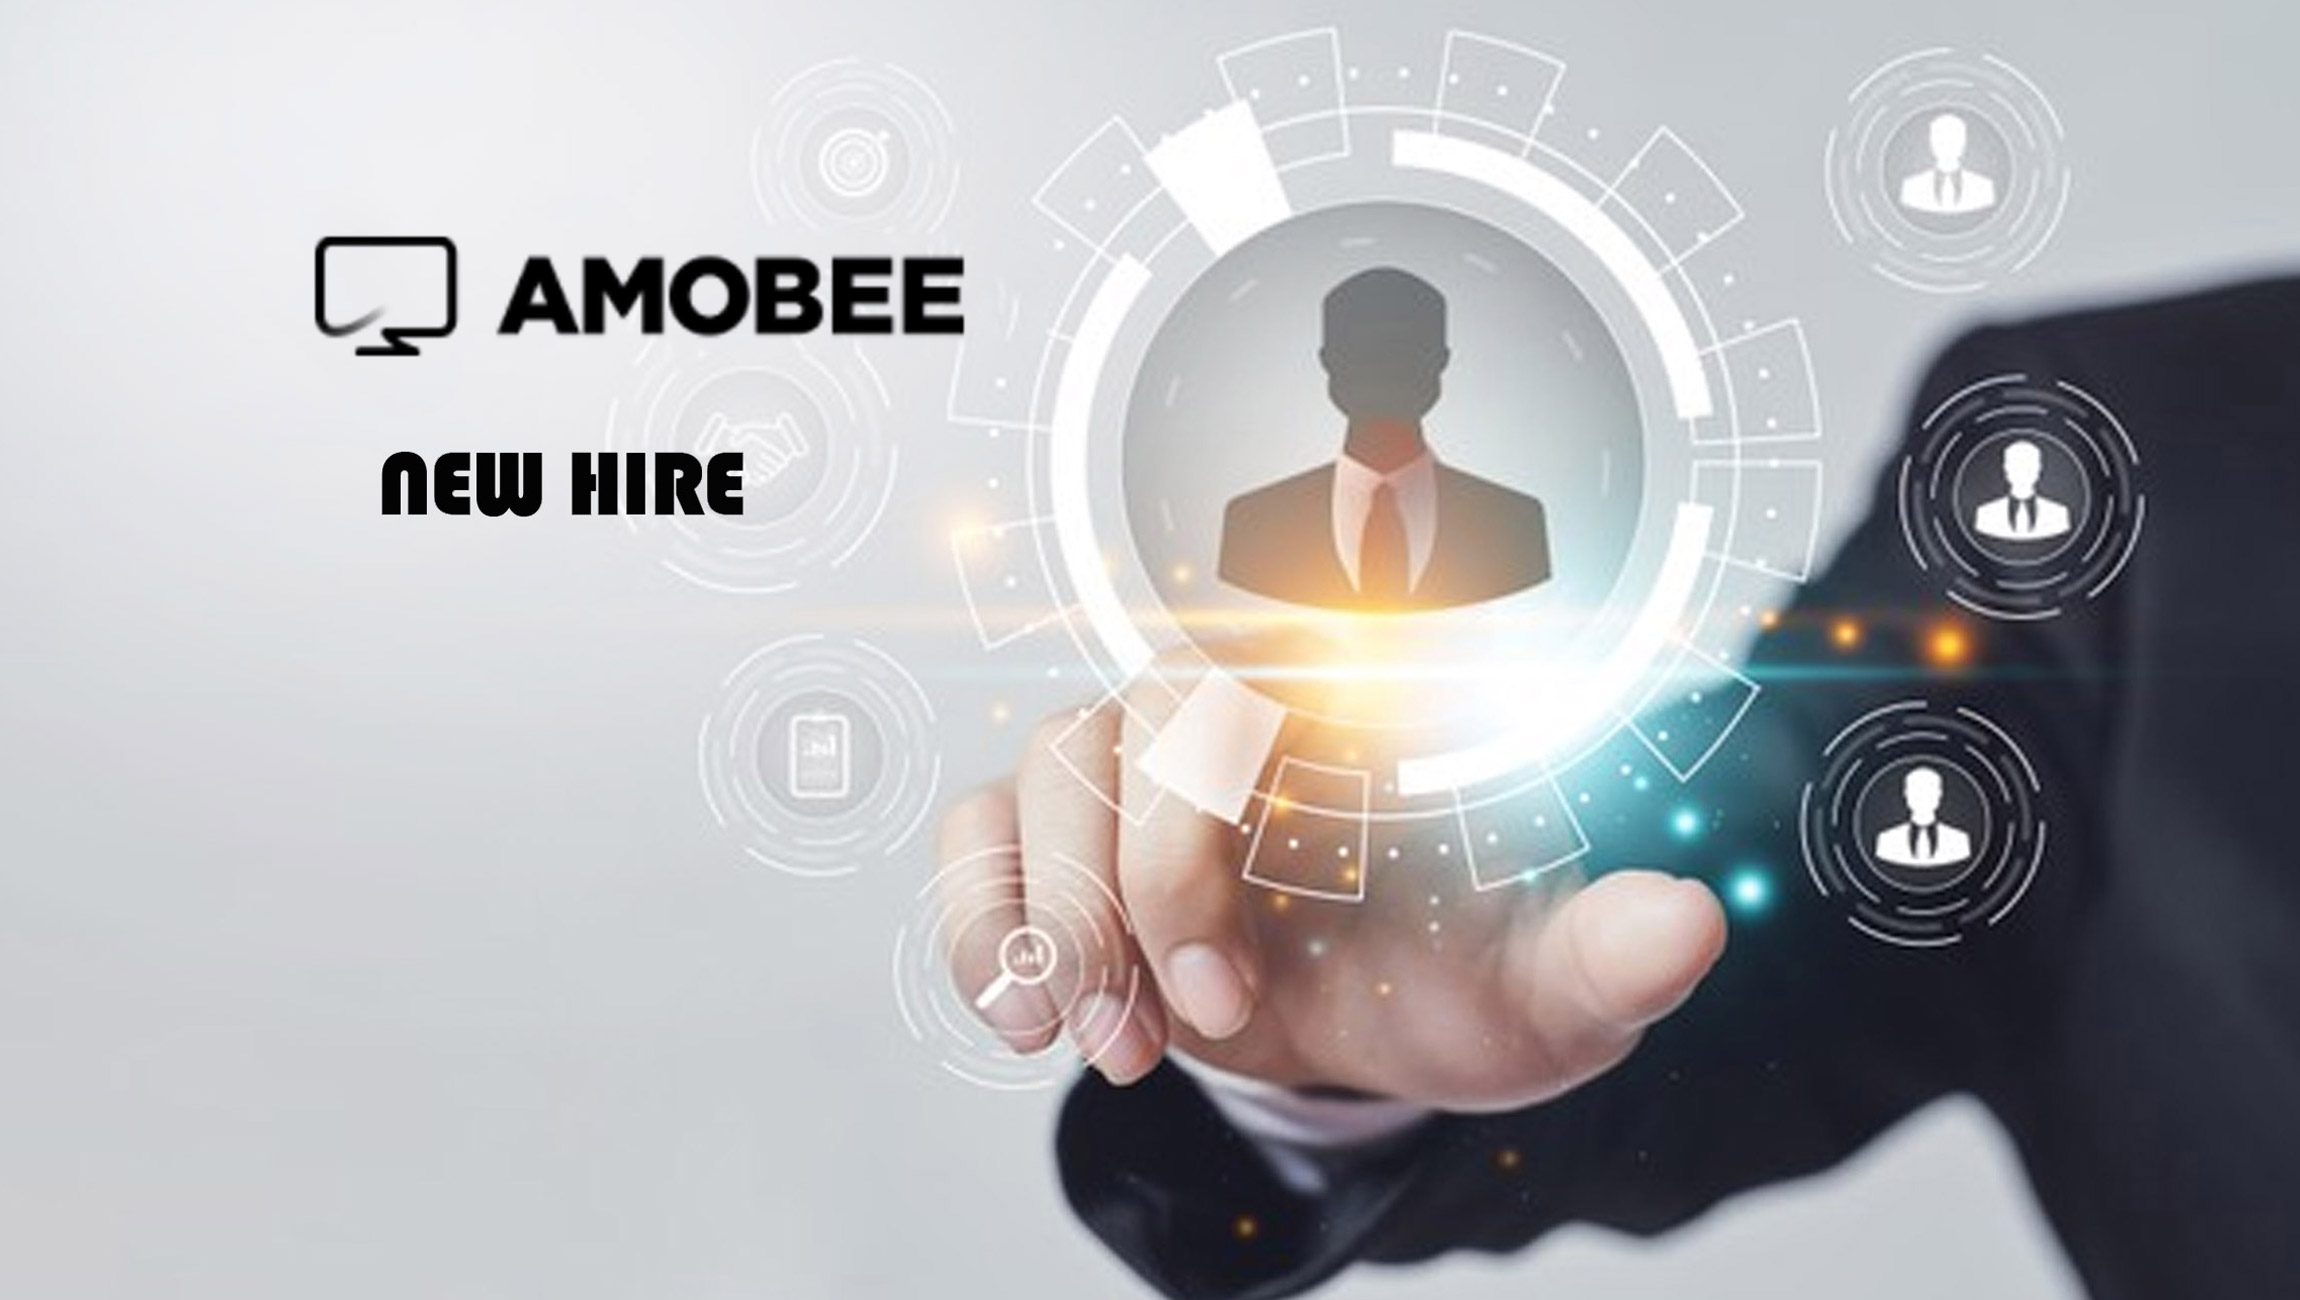 Amobee Bolsters Executive Team With Duo Of Industry Titans: Adds Tim Spengler As General Manager Of Advanced TV Solutions And Valerie Bischak As General Manager, Head Of Growth